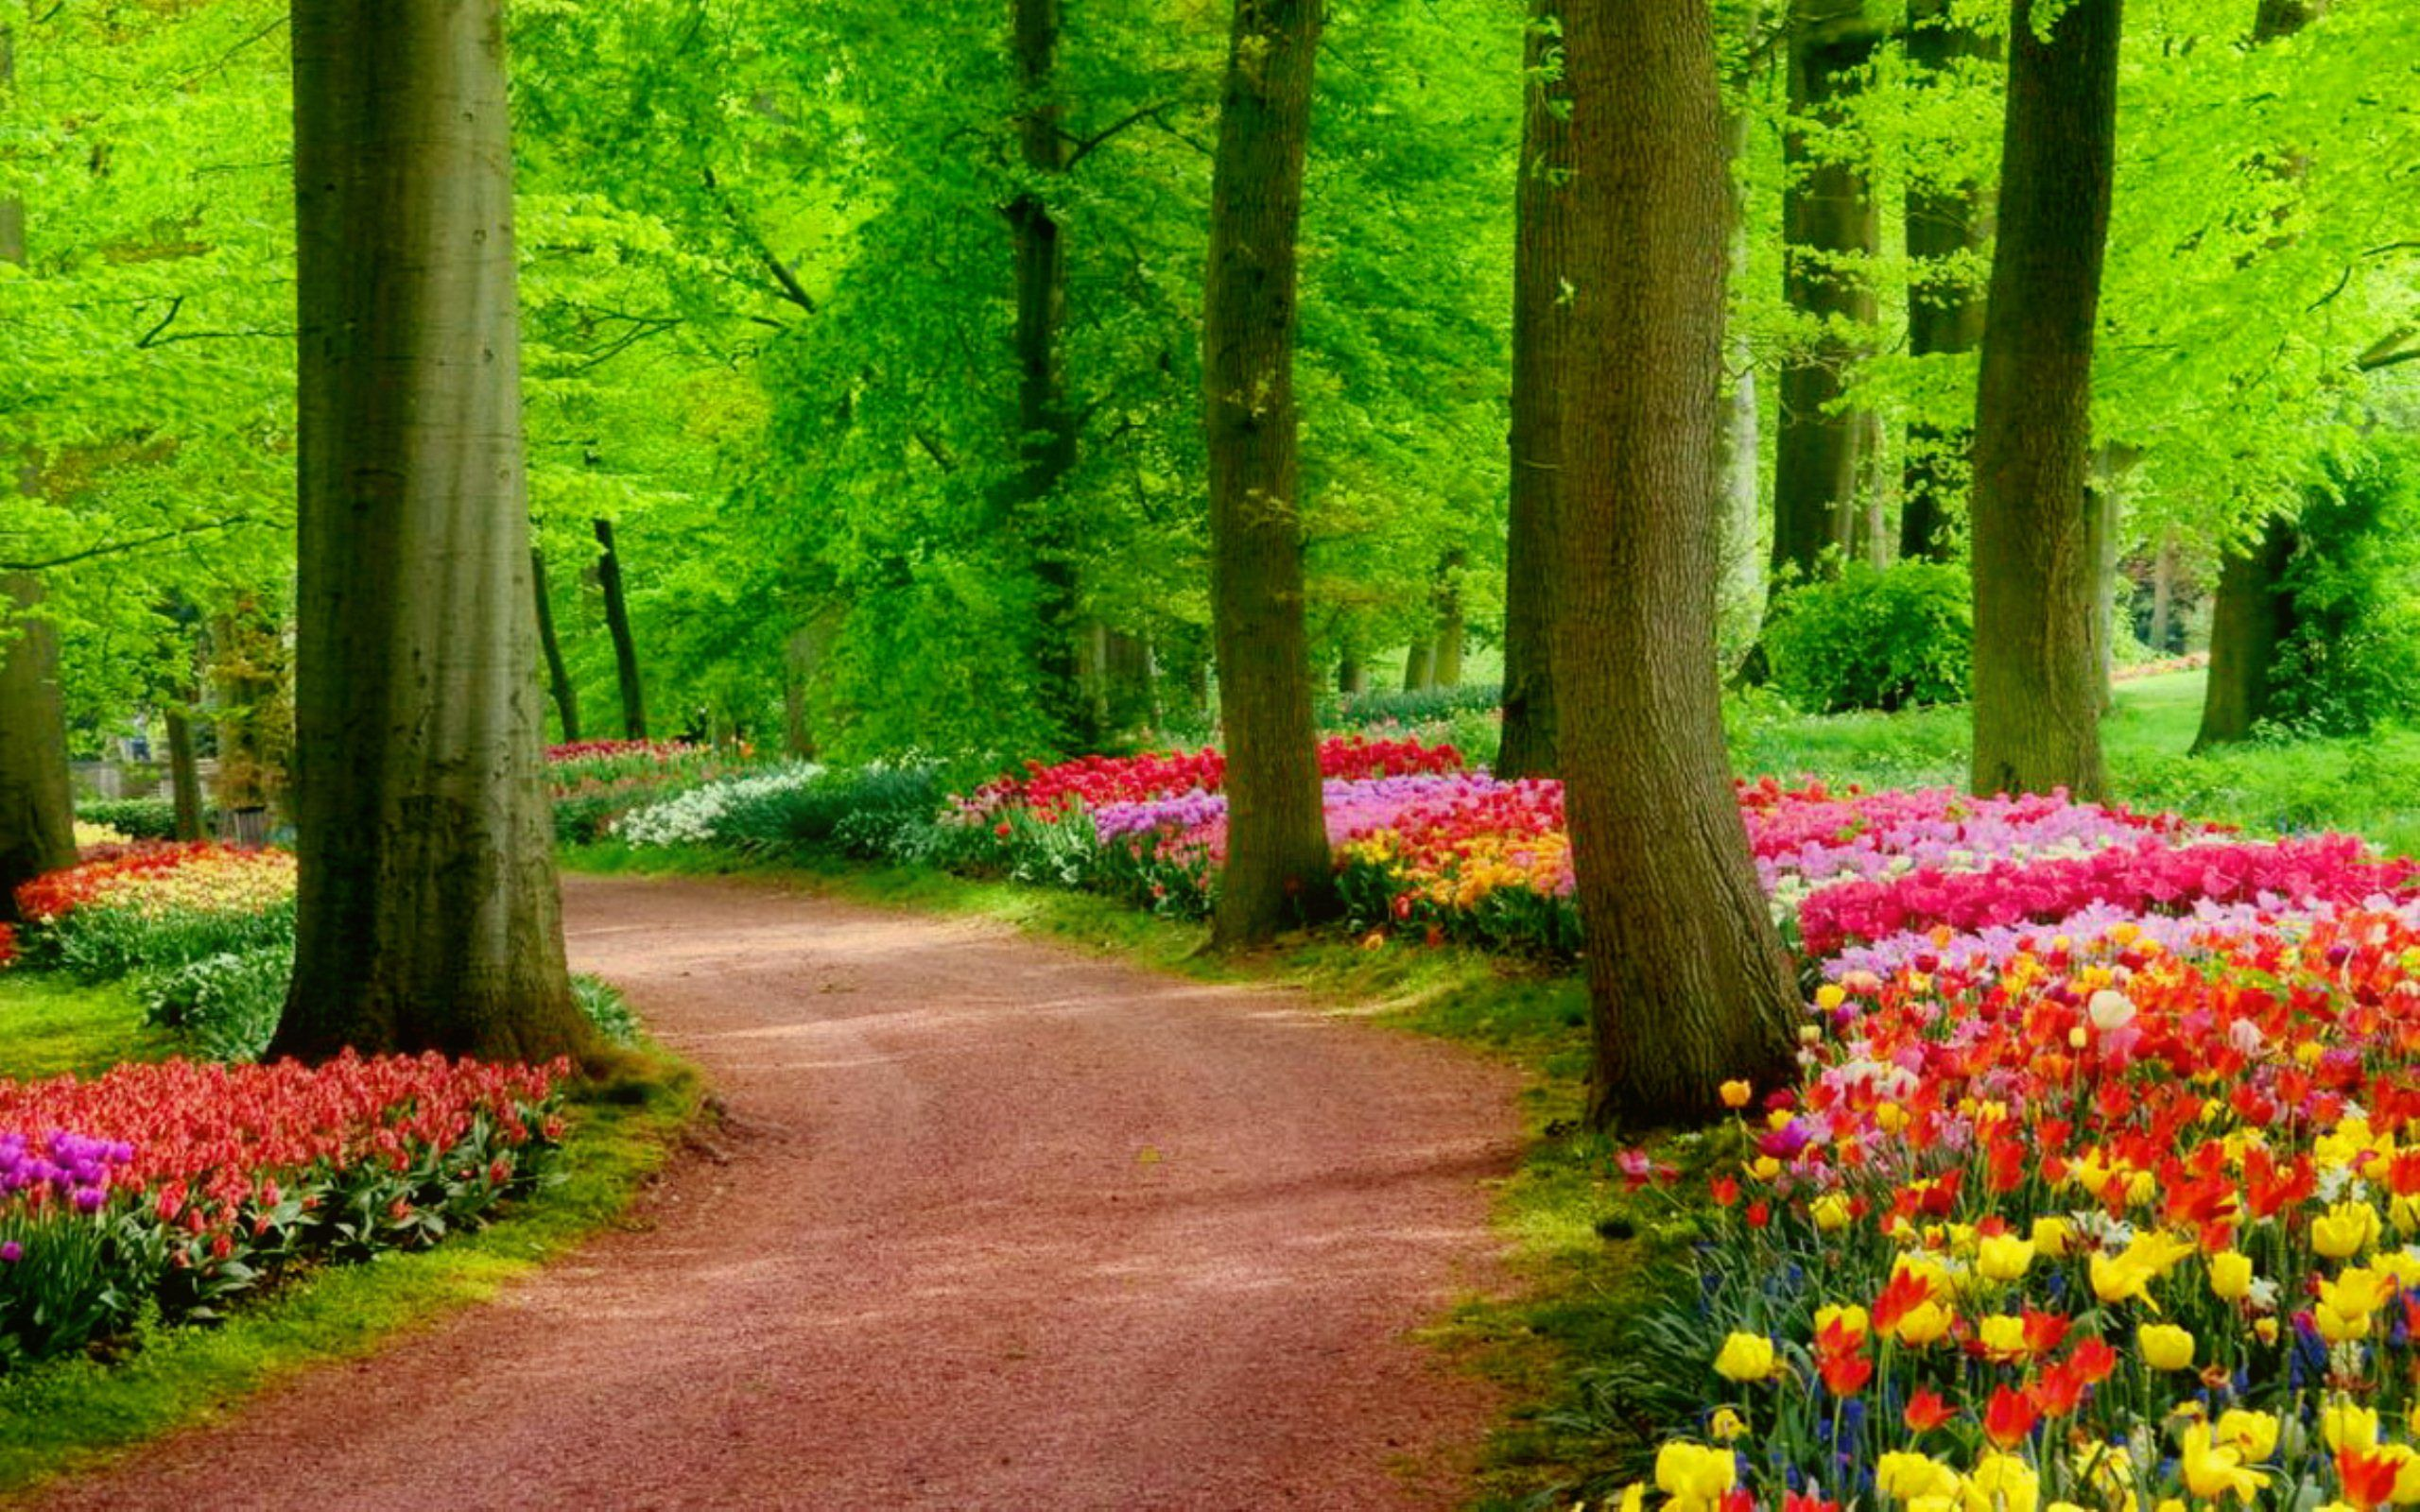 Colorful Spring Park Jpg 2560 1600 Landscape Pictures Nature Desktop Wallpaper Nature Images Hd